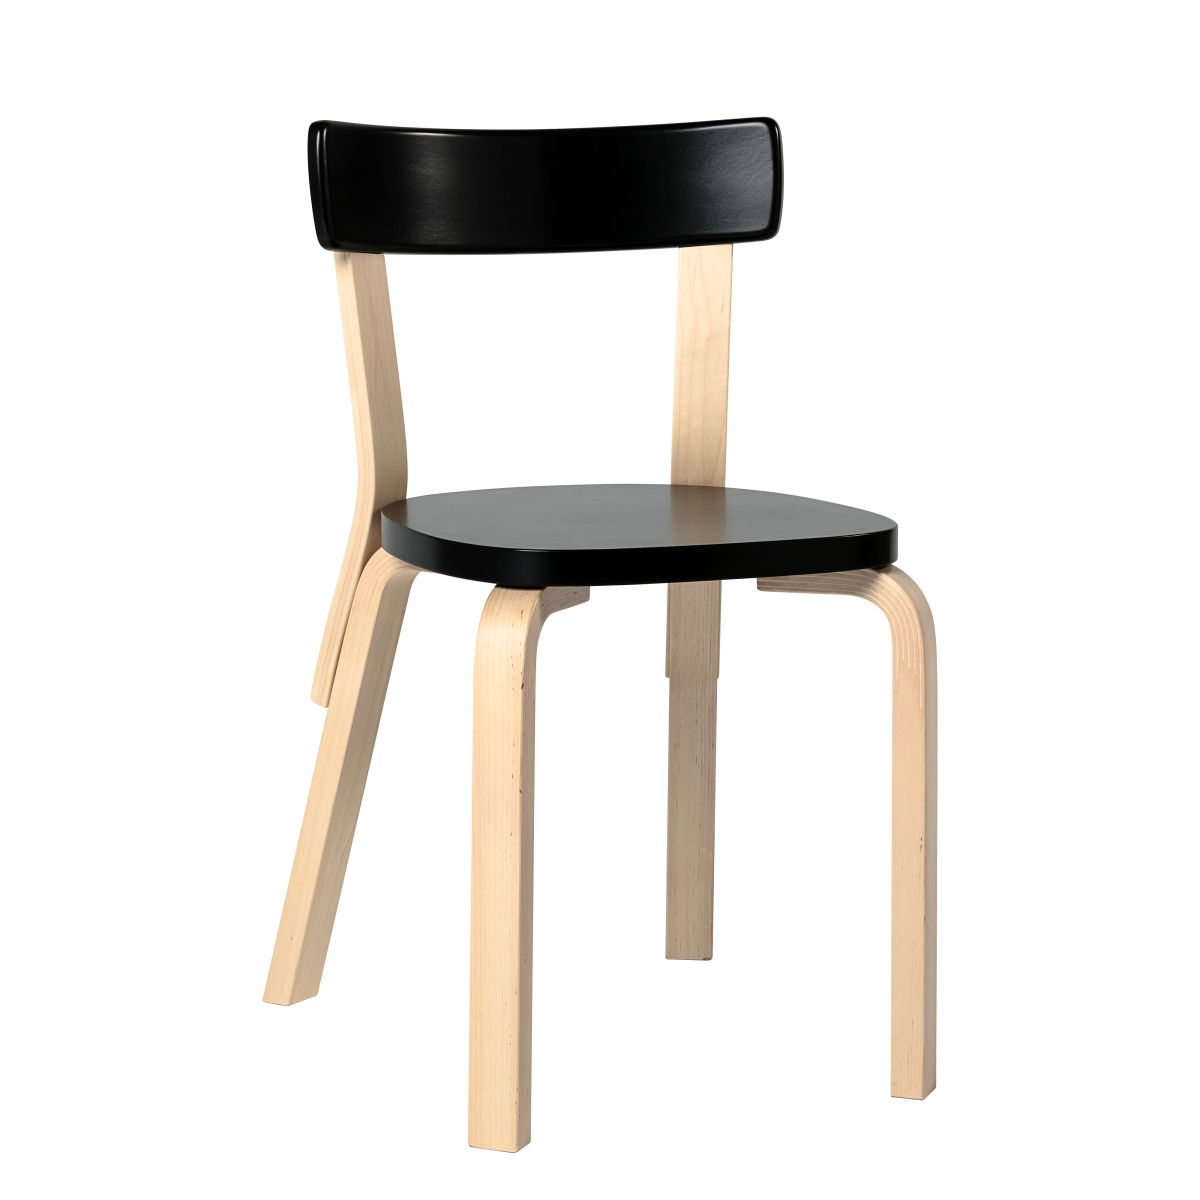 Chair-69-Black-Lacquer-Seat